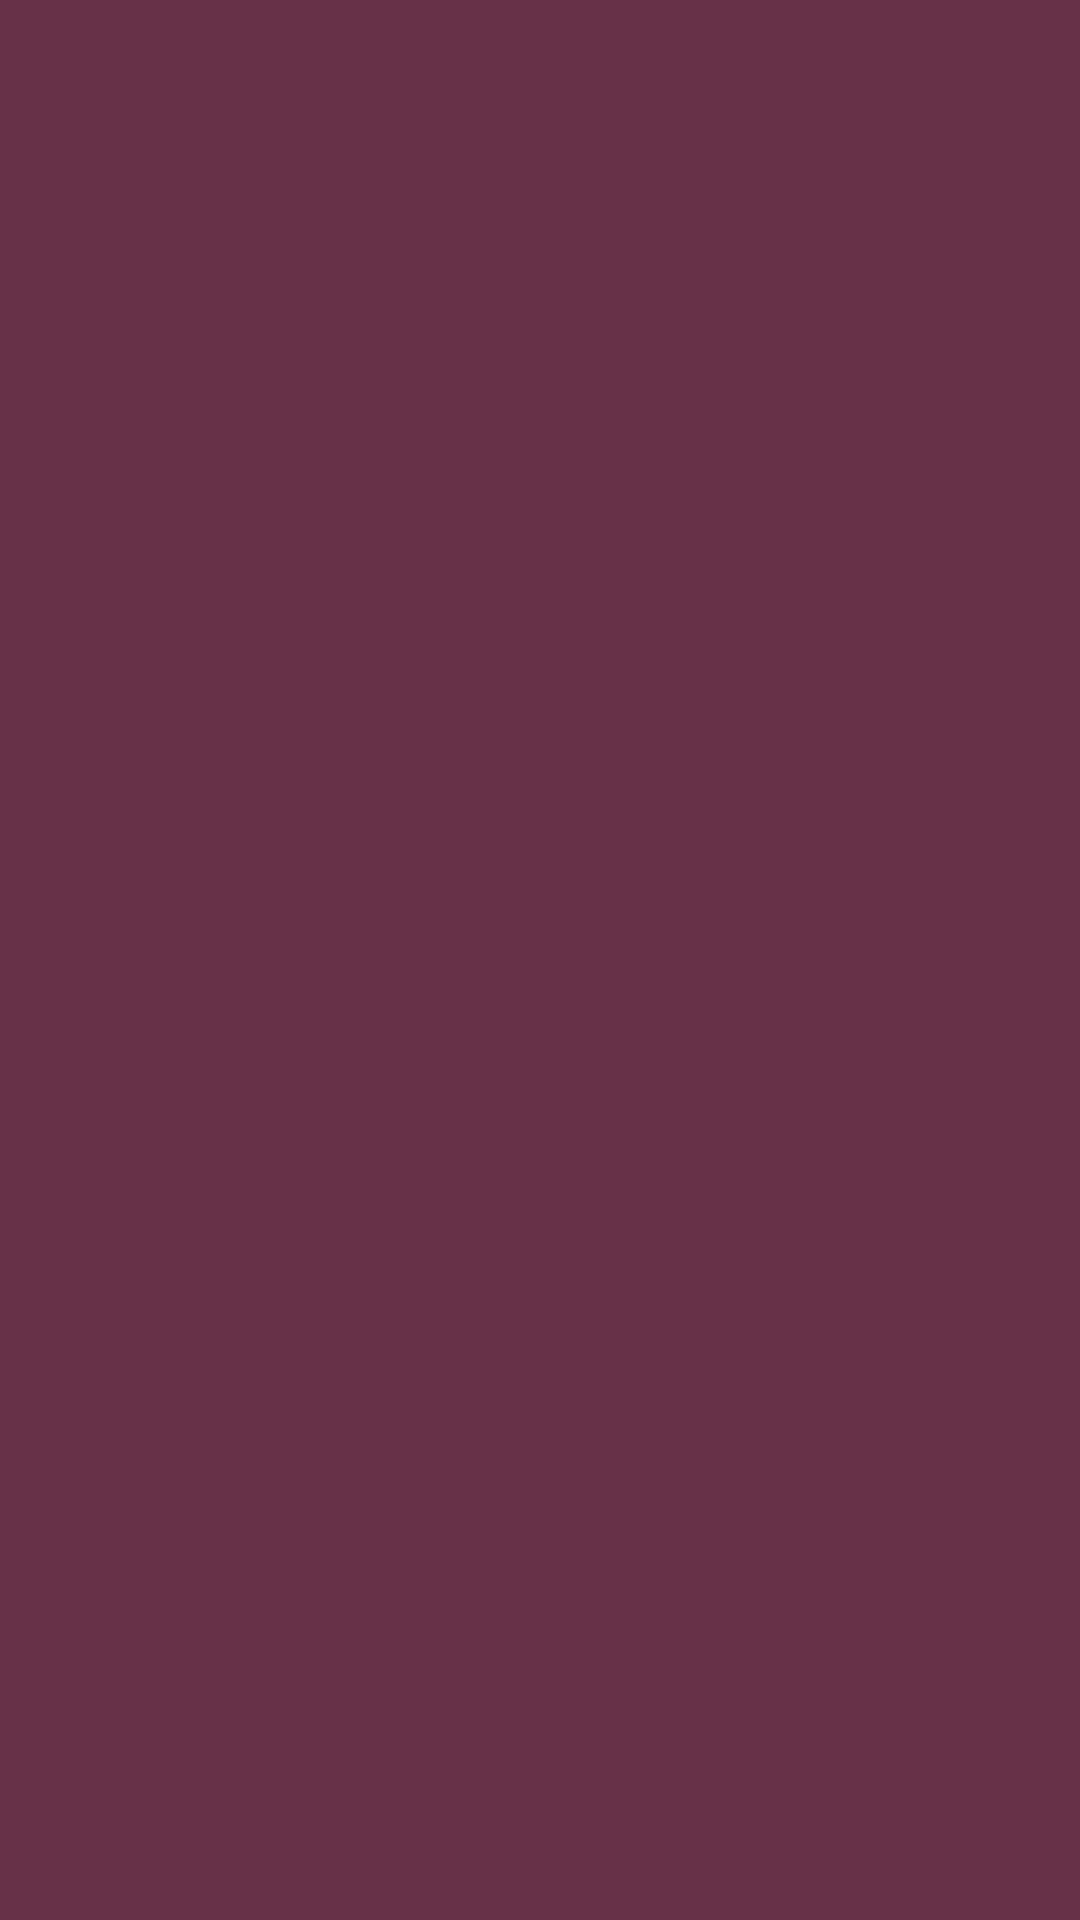 1080x1920 Wine Dregs Solid Color Background